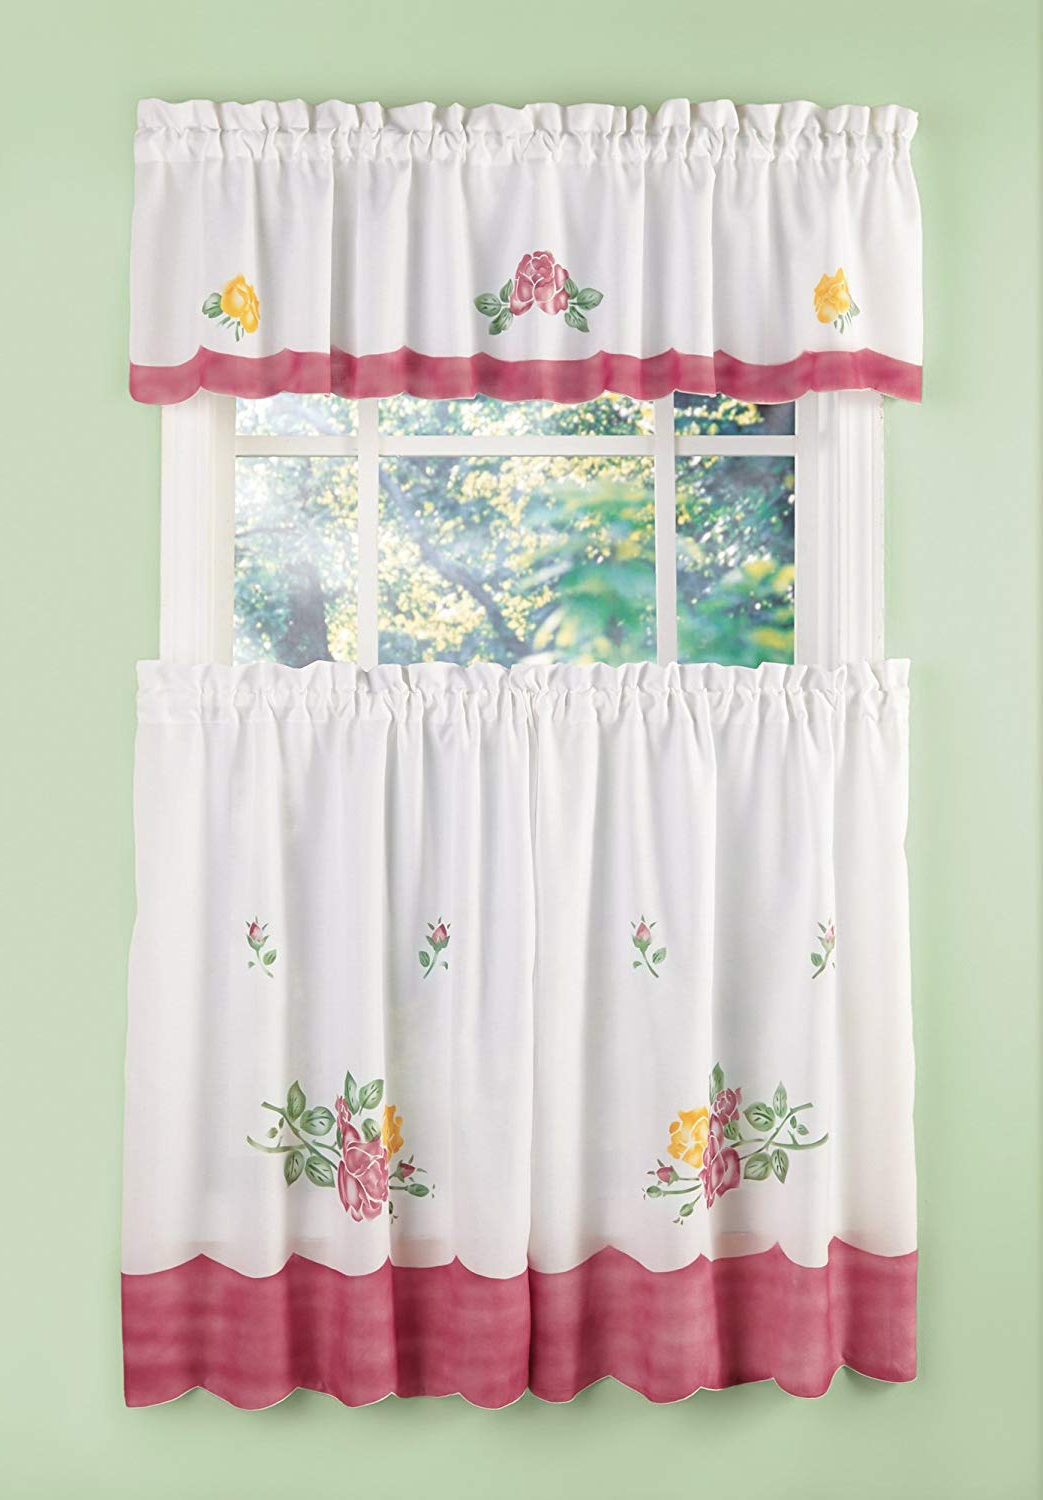 Most Recent Amazon: Kitchen Curtains – Cafe Curtain Set, 3 Piece Intended For Microfiber 3 Piece Kitchen Curtain Valance And Tiers Sets (View 11 of 20)